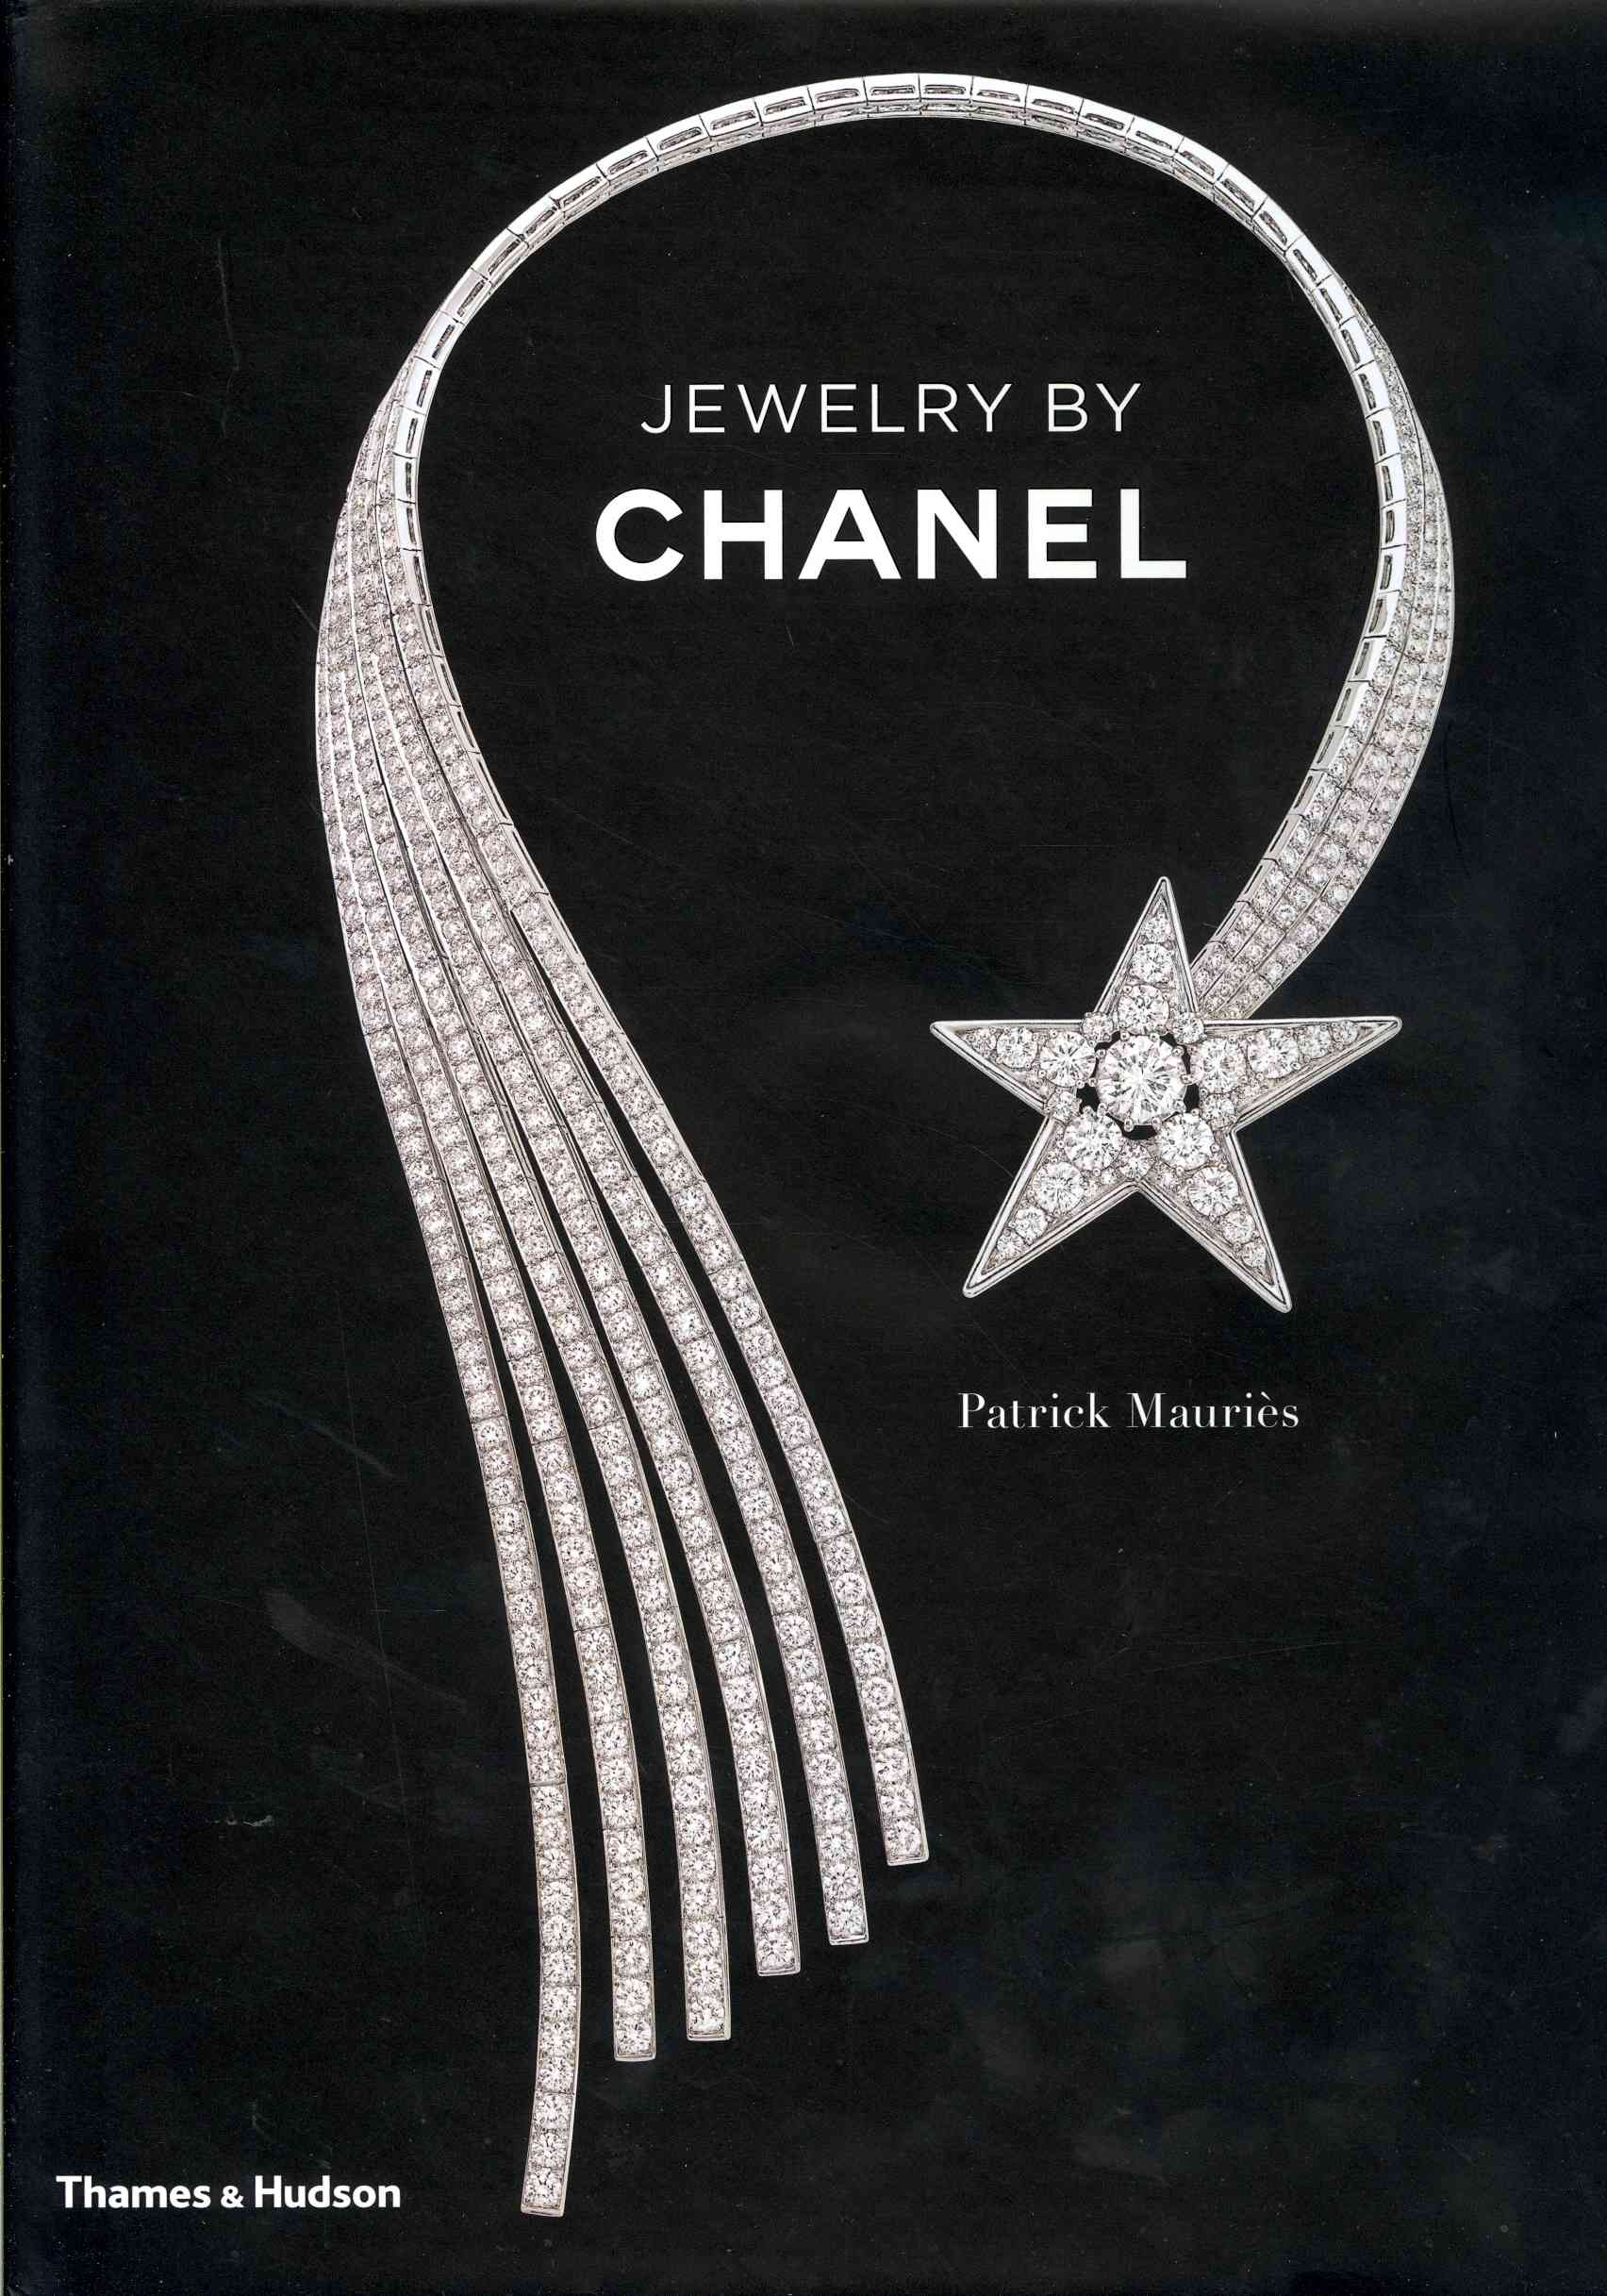 Jewelry by Chanel By Mauries, Patrick